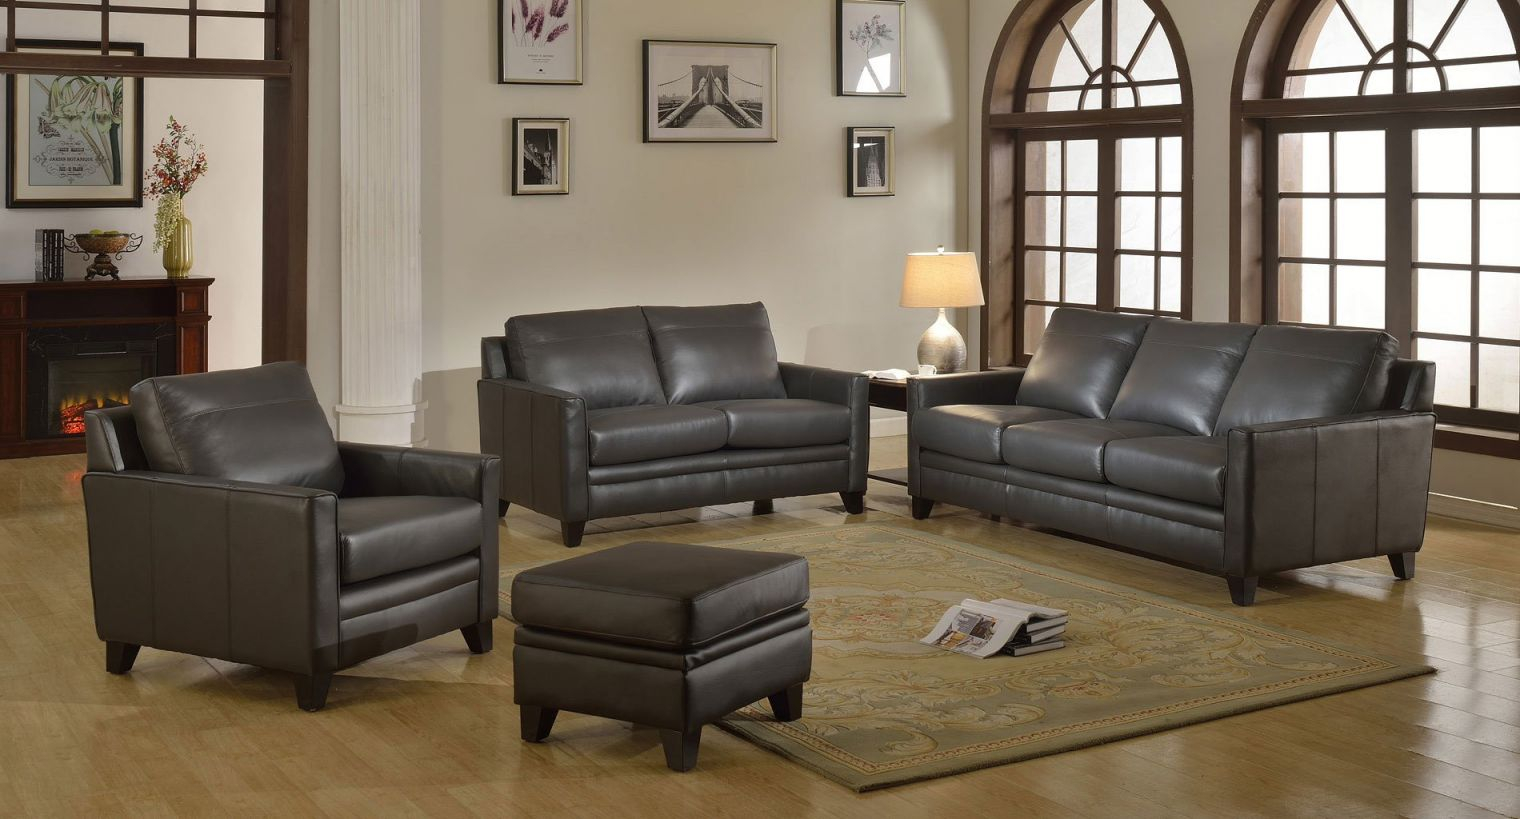 Fletcher Leather Living Room Set (Charcoal) throughout Awesome Leather Living Room Sets